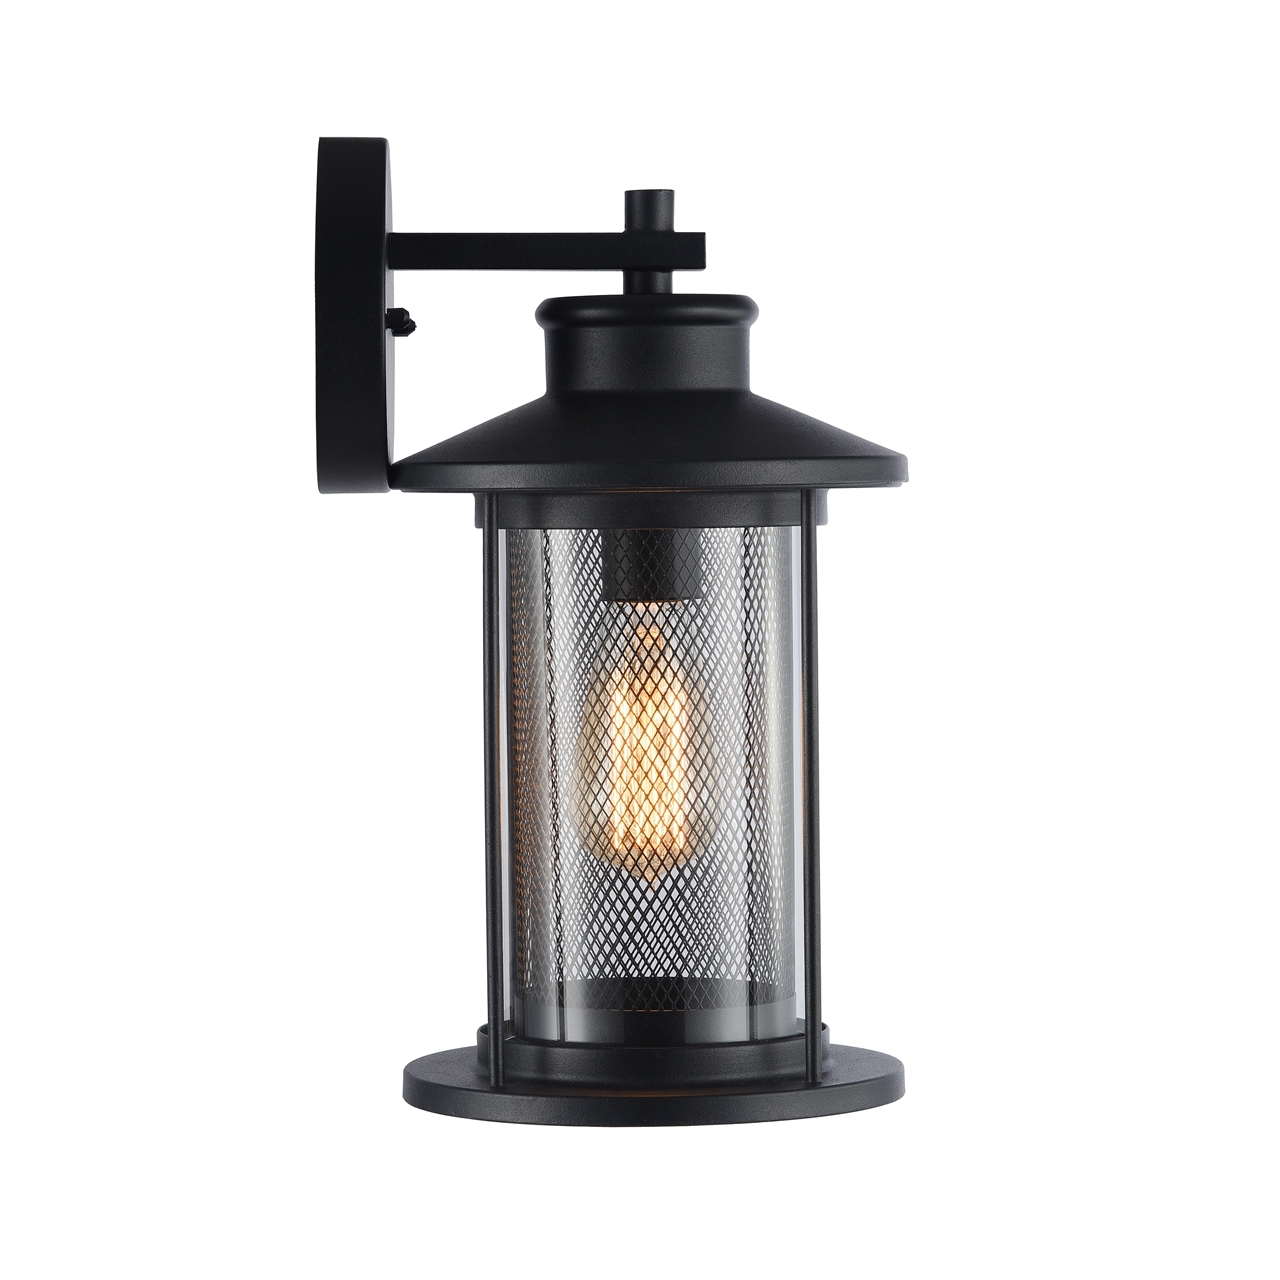 Chloe Lighting Inc Chloe Lighting Crichton Transitional